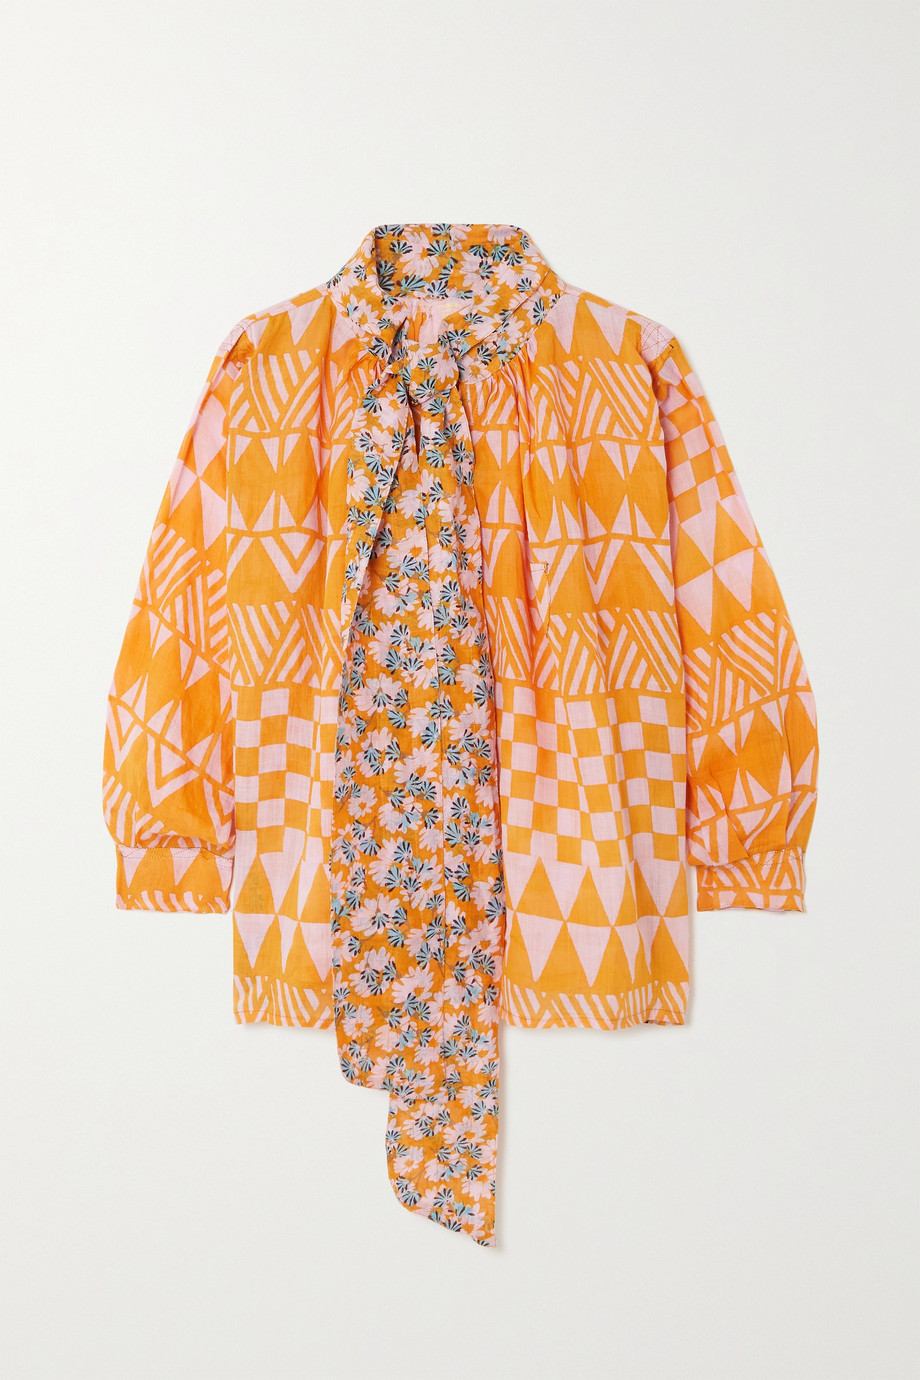 Yvonne S Pussy-bow printed linen blouse